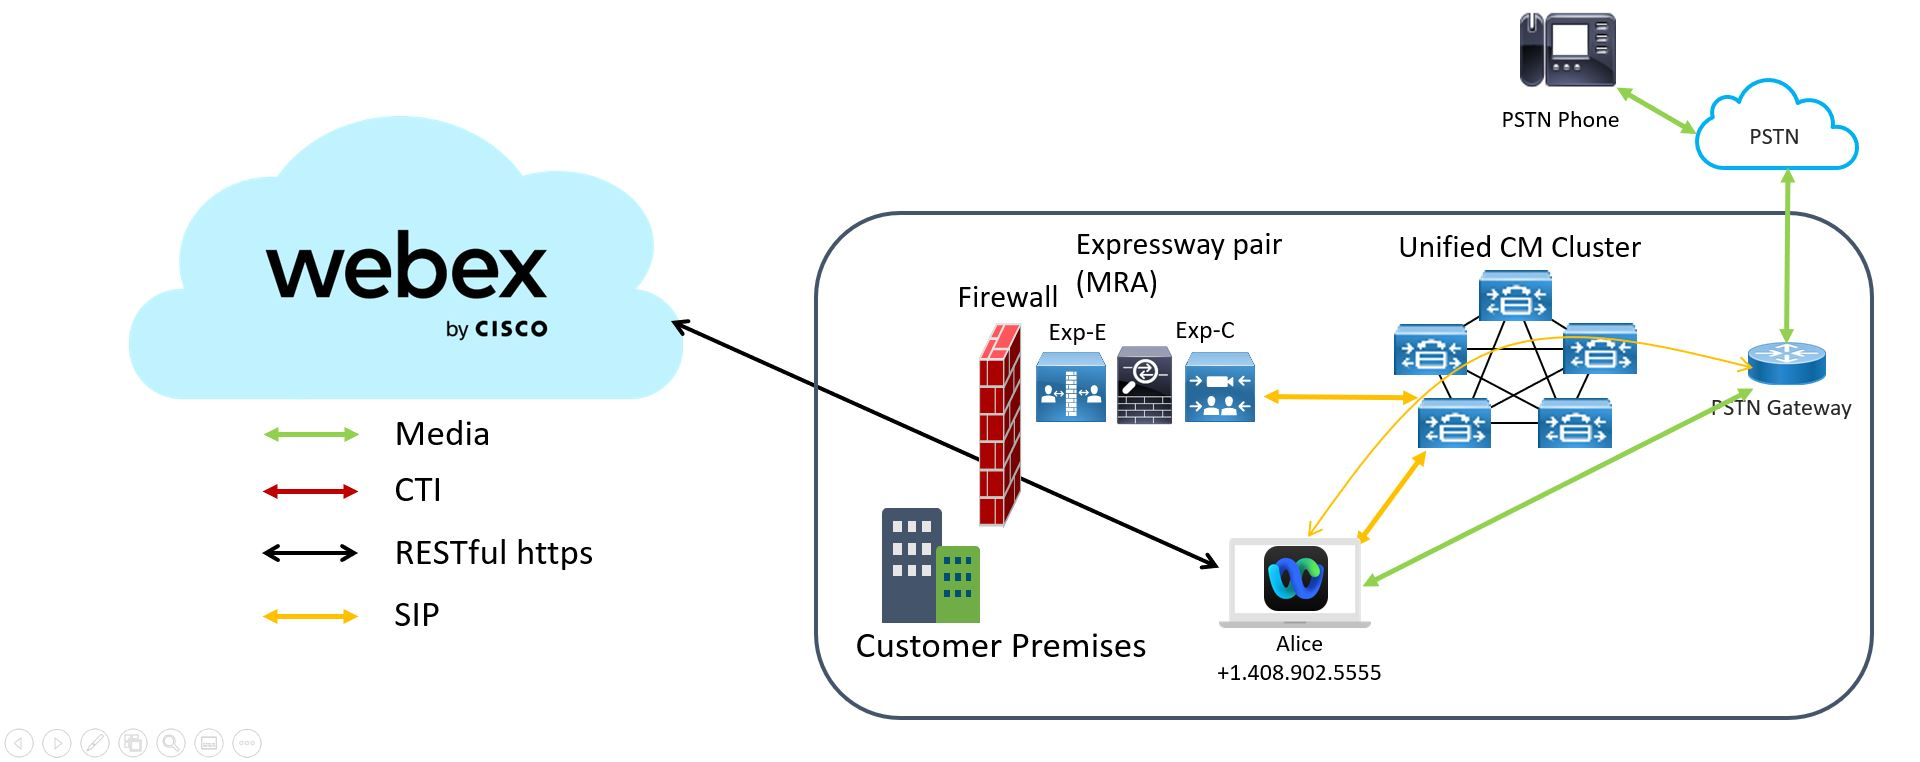 Deployment Guide for Calling in Webex Teams (Unified CM) - Overview